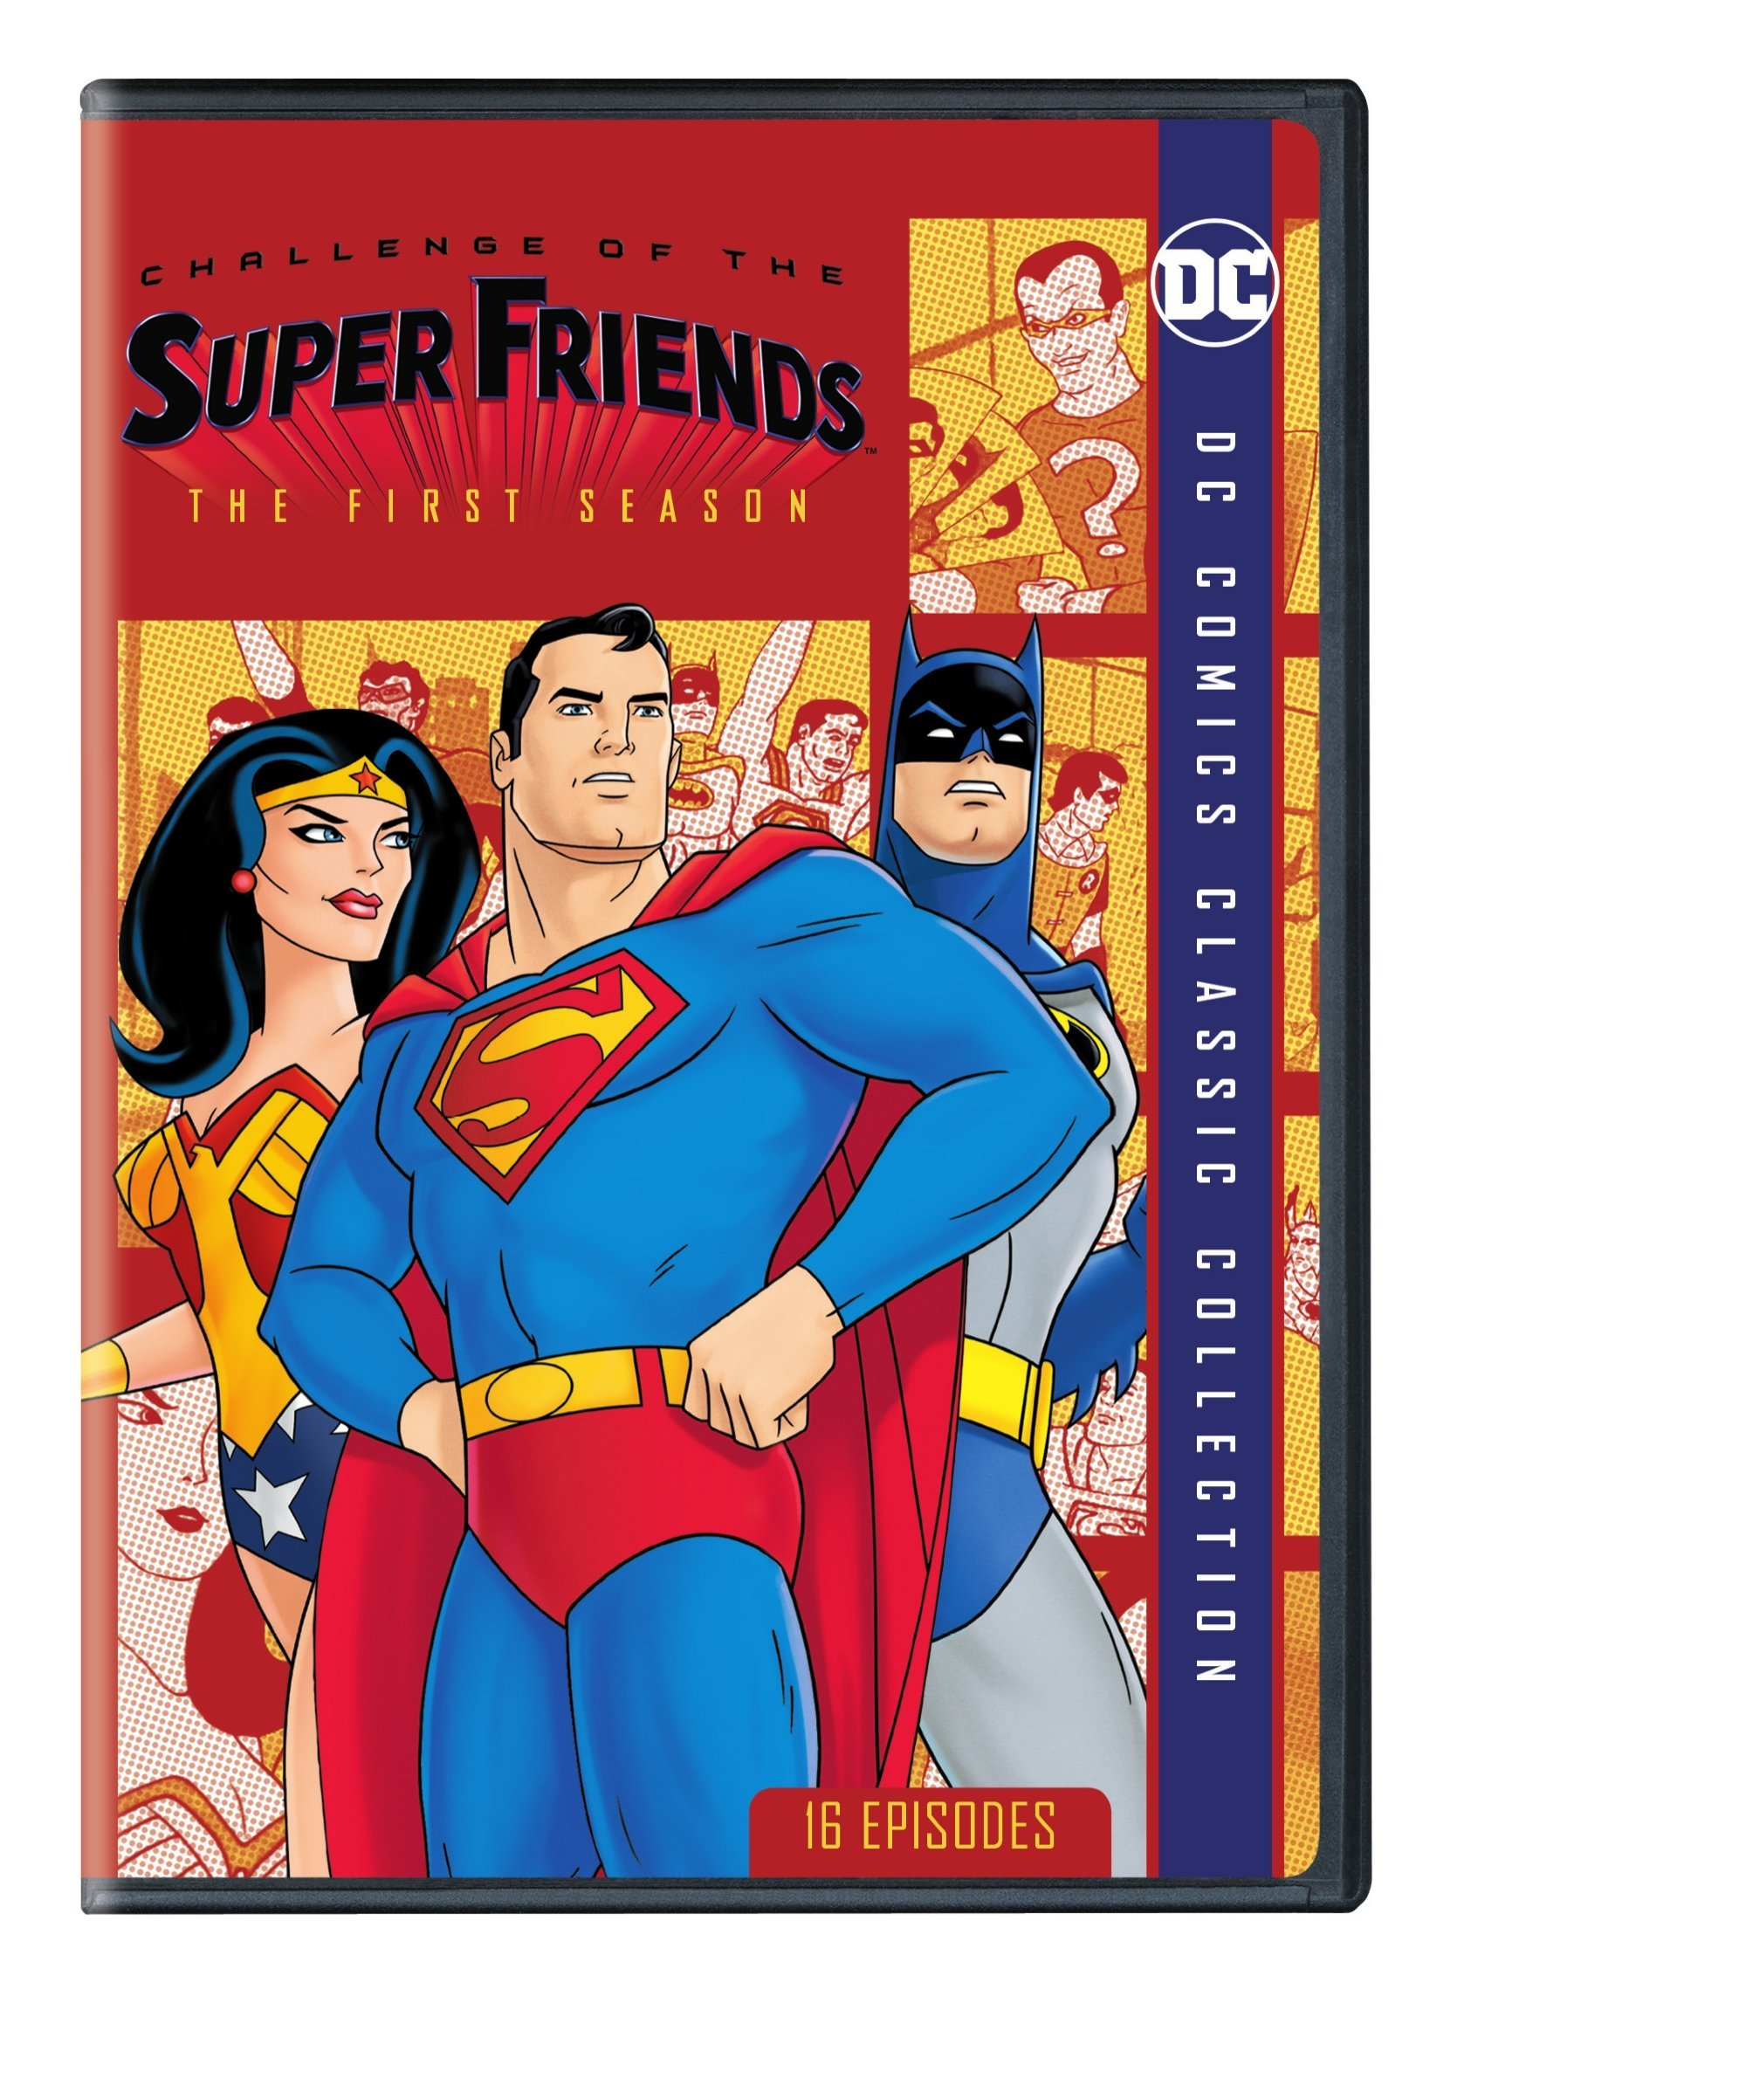 DVD : Challenge Of The Super Friends: The First Season (Amaray Case, Repackaged)